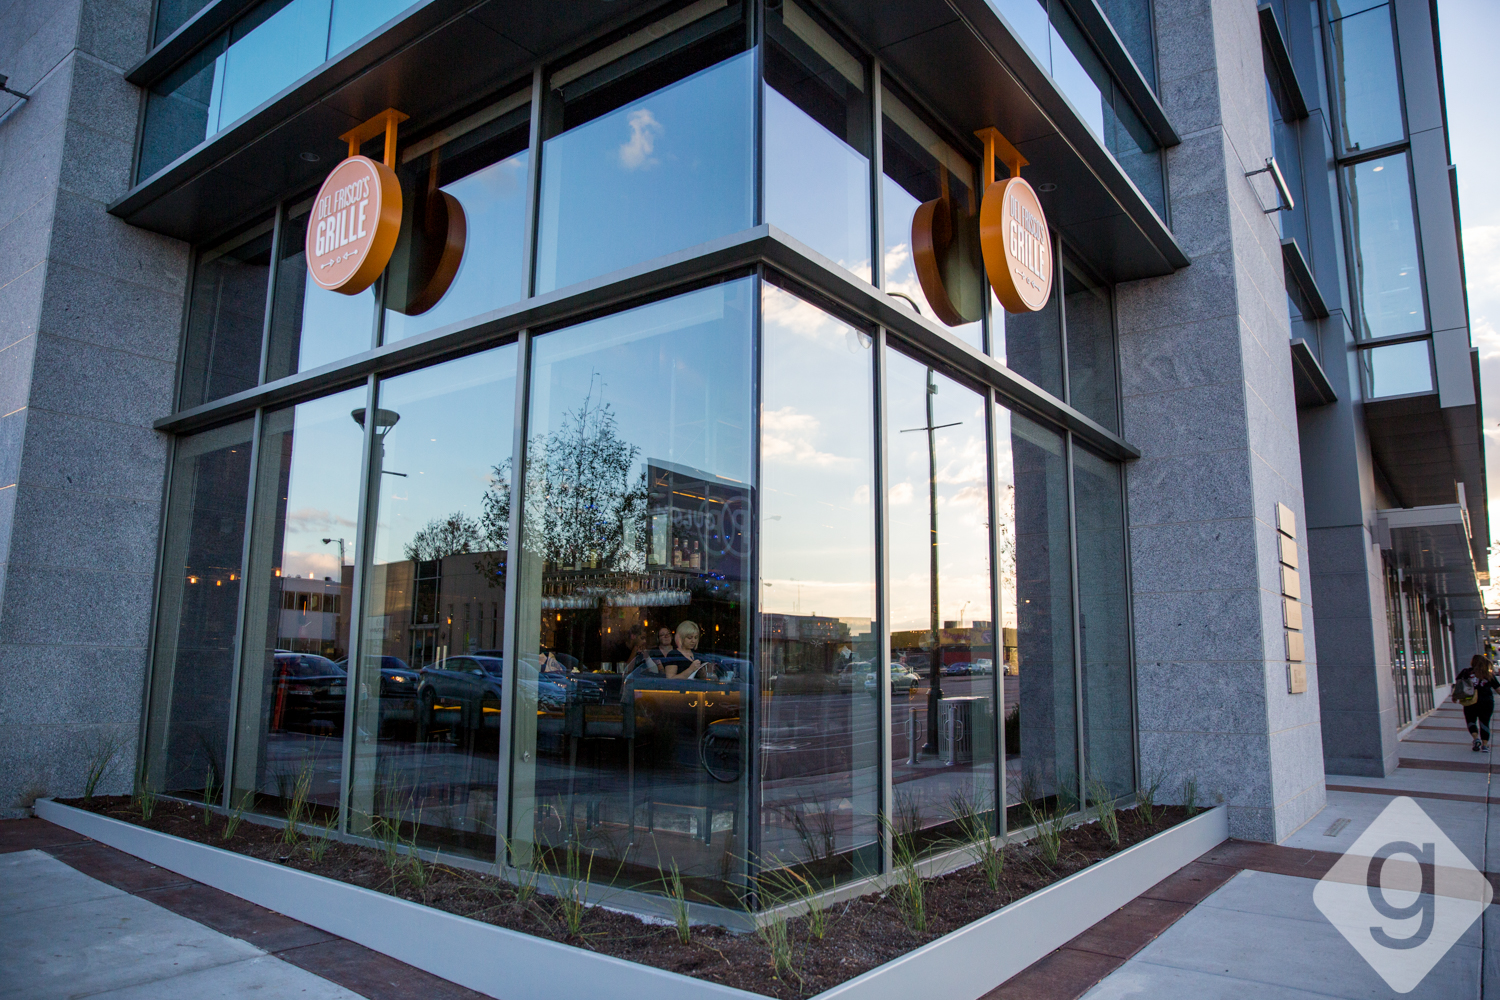 Exterior Light Fixtures A Look Inside: Del Frisco's Grille | Nashville Guru